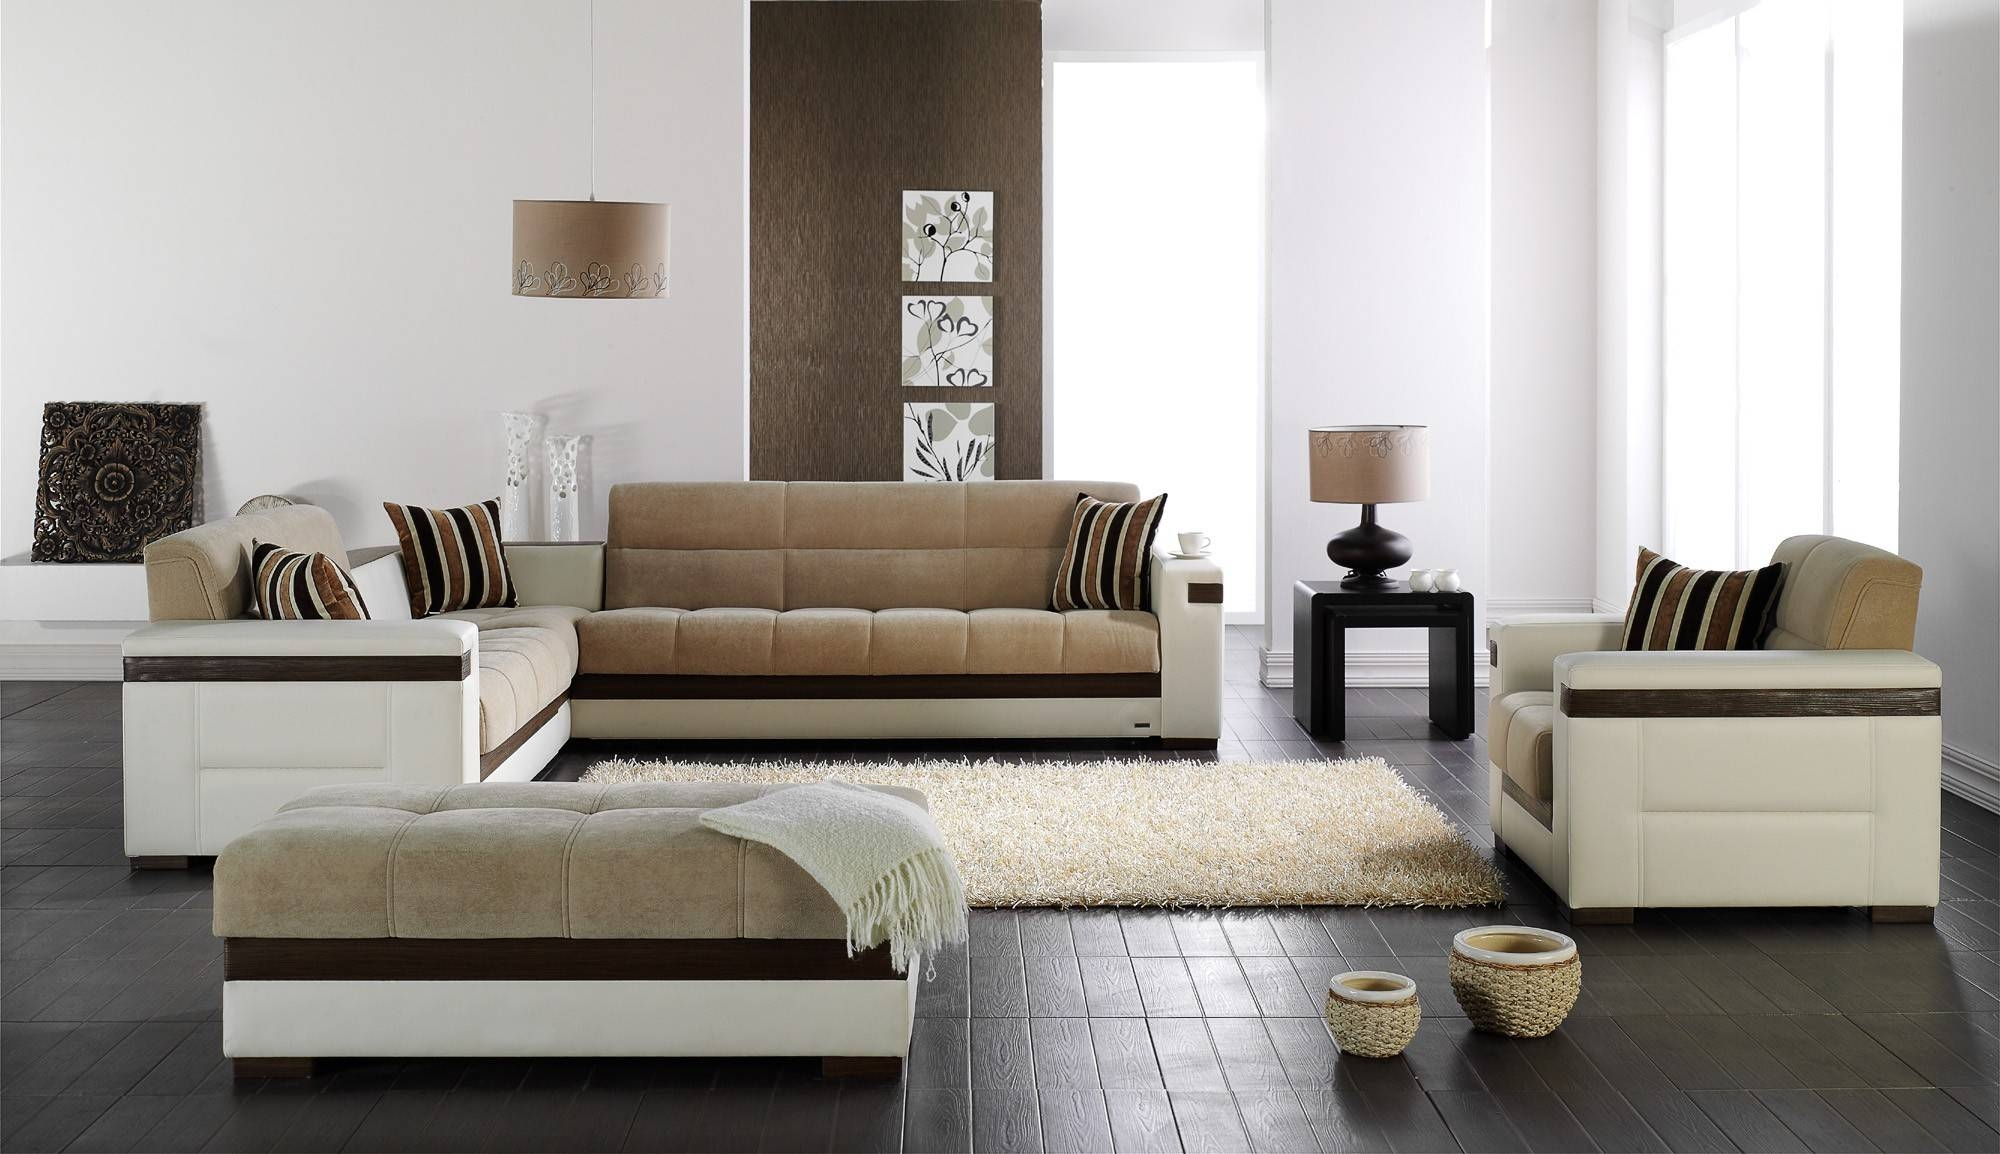 Moon Sectional Sofa Sleeper with regard to European Sectional Sofas (Image 18 of 30)